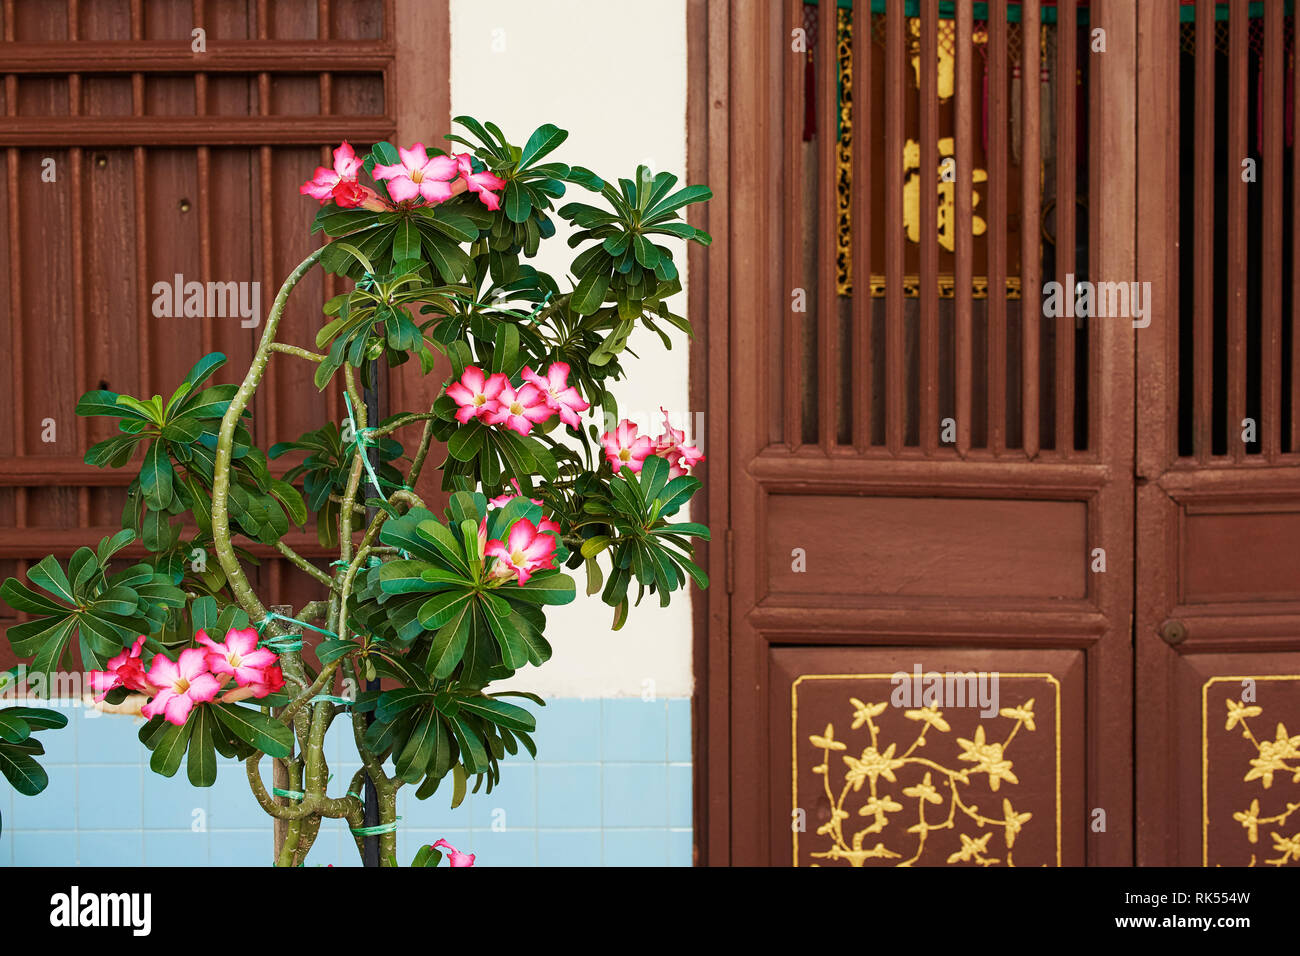 Oleander flowers and a Doorway with decorative carving on a old shophouse building on the street in George Town, Penang, Malaysia - Stock Image